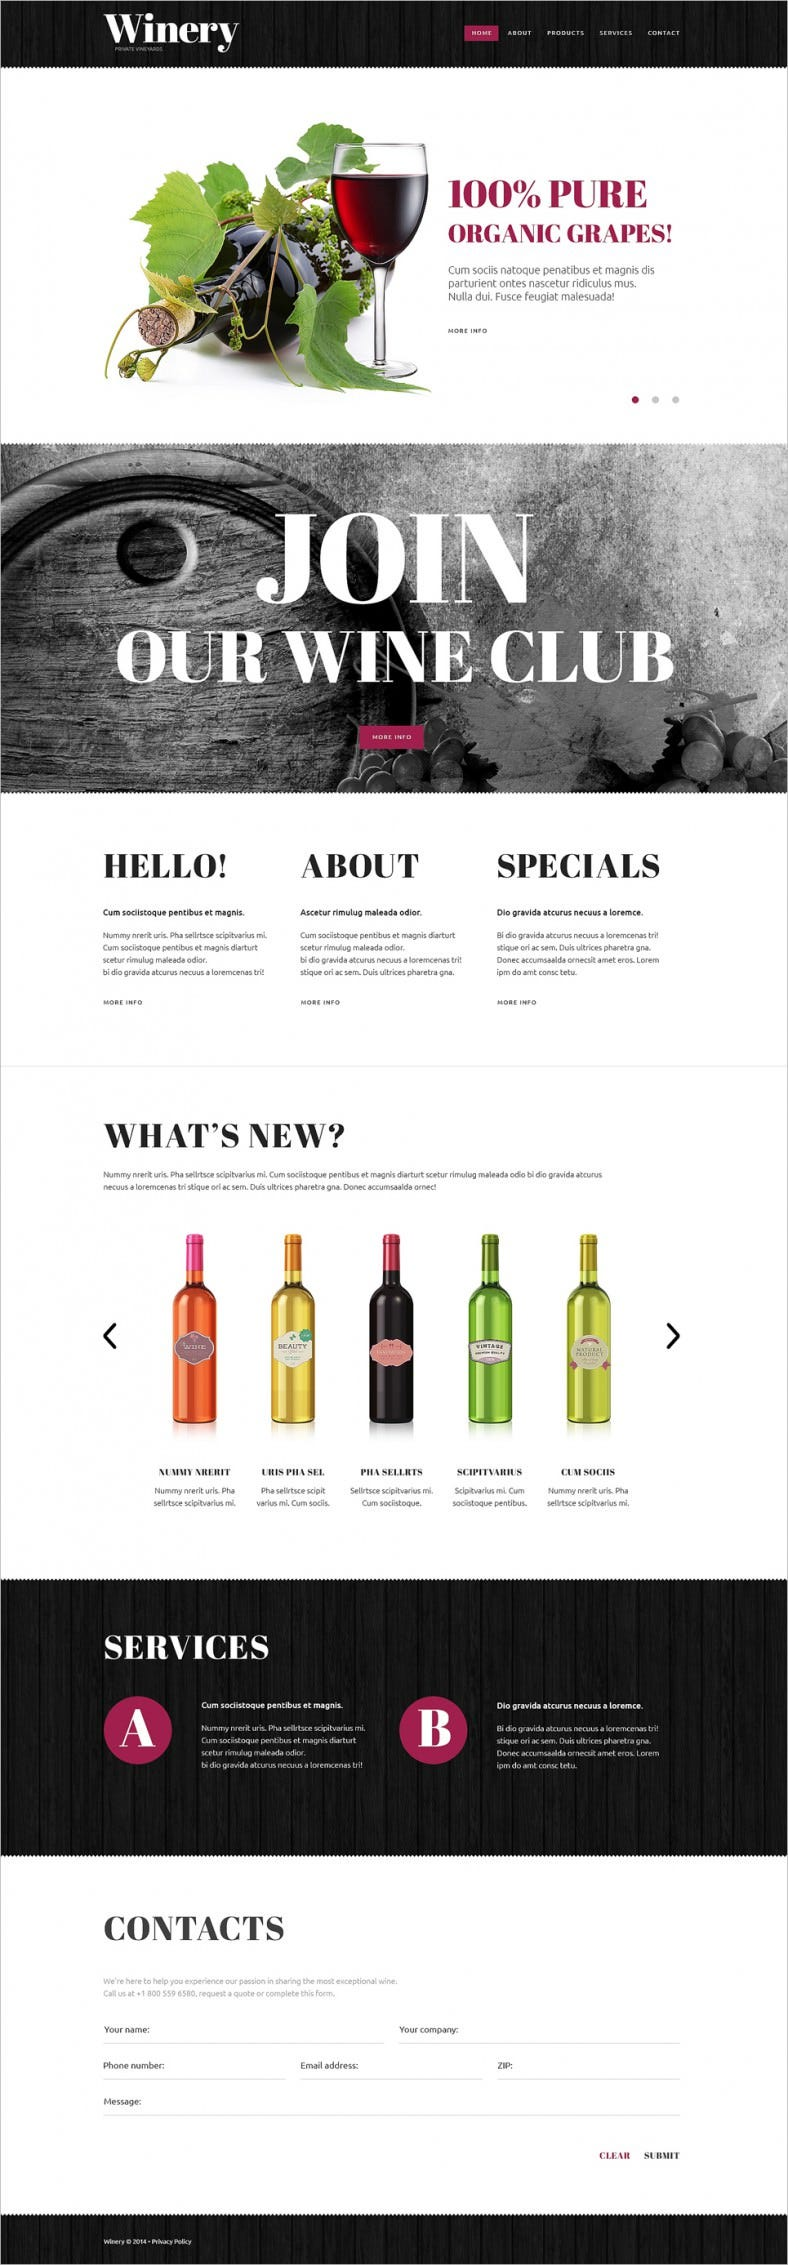 White & Black Website Template for Wines Shop